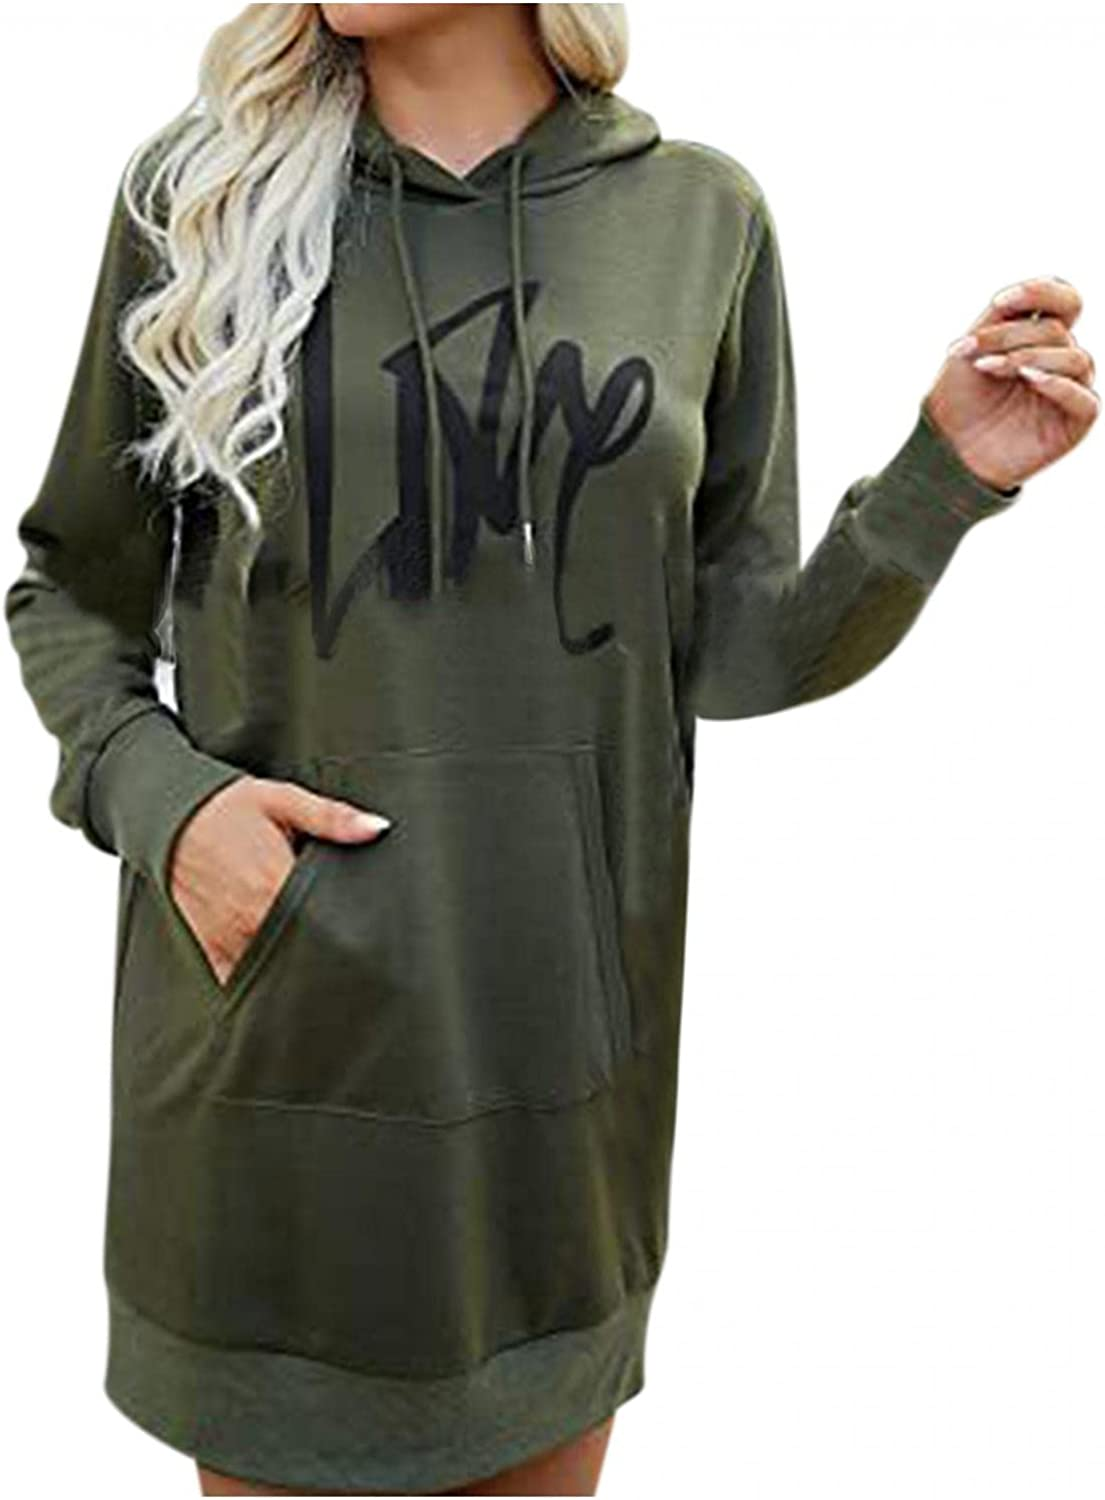 Tunic Superior Hoodies Sweatshirt for Women Love Printi Courier shipping free shipping Fashion Letters -